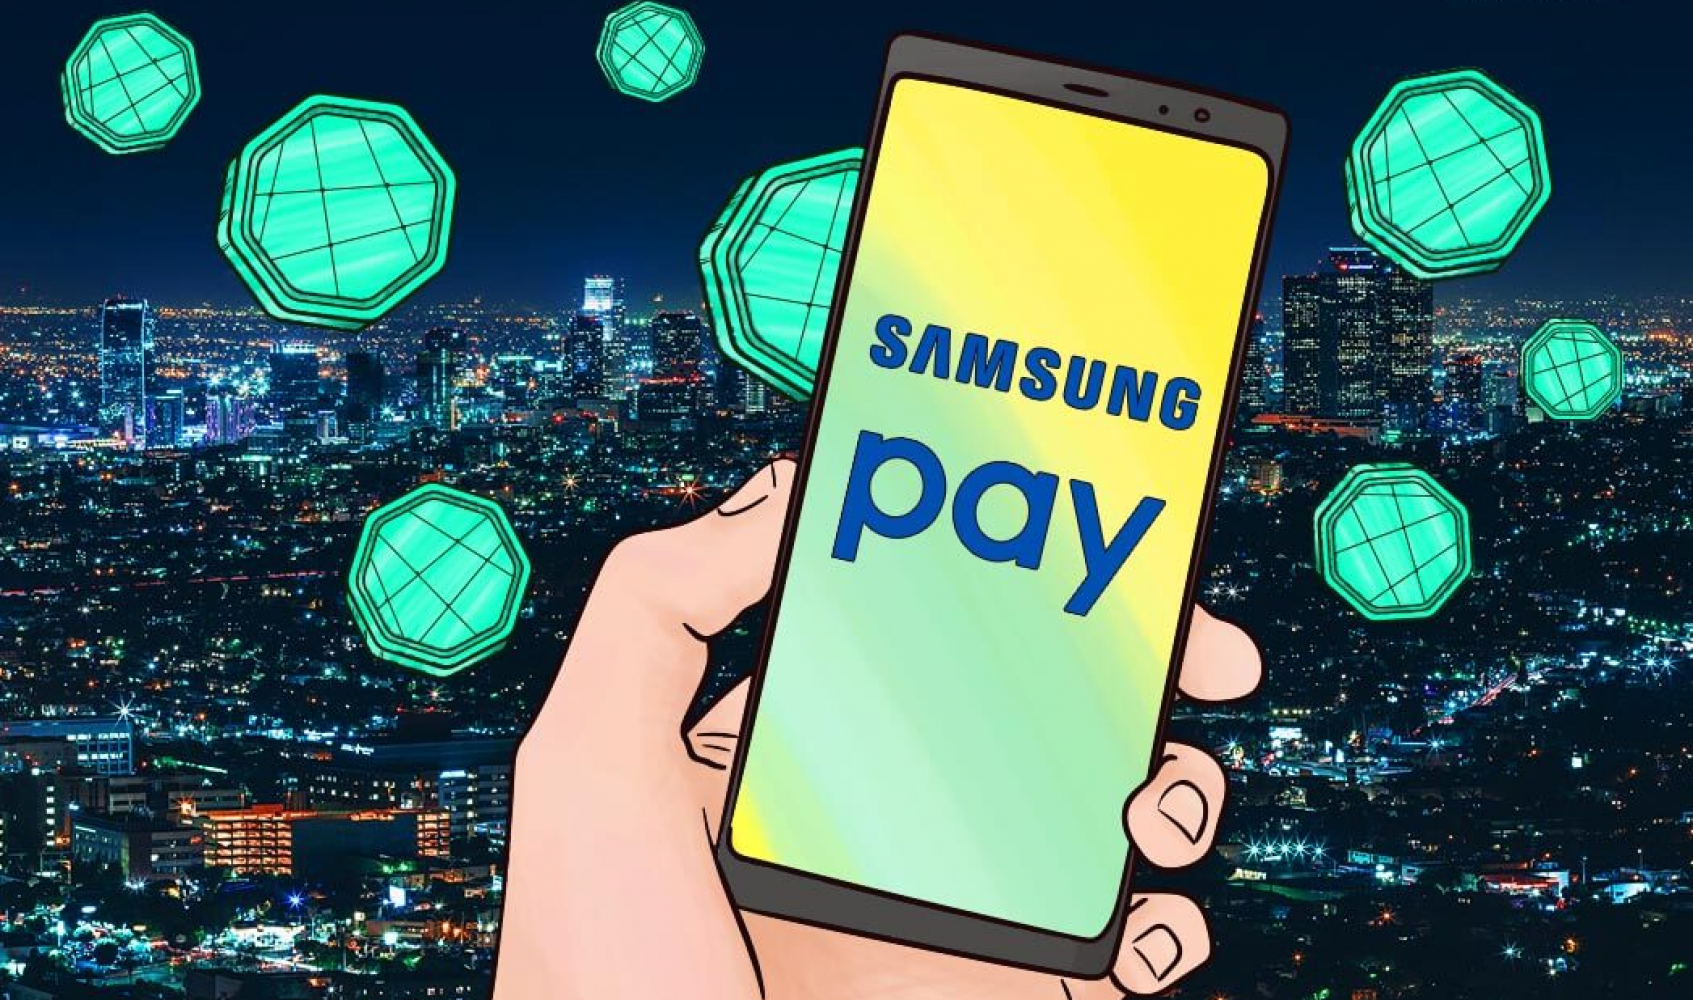 Samsung Pay will allow you to pay with cryptocurrencies